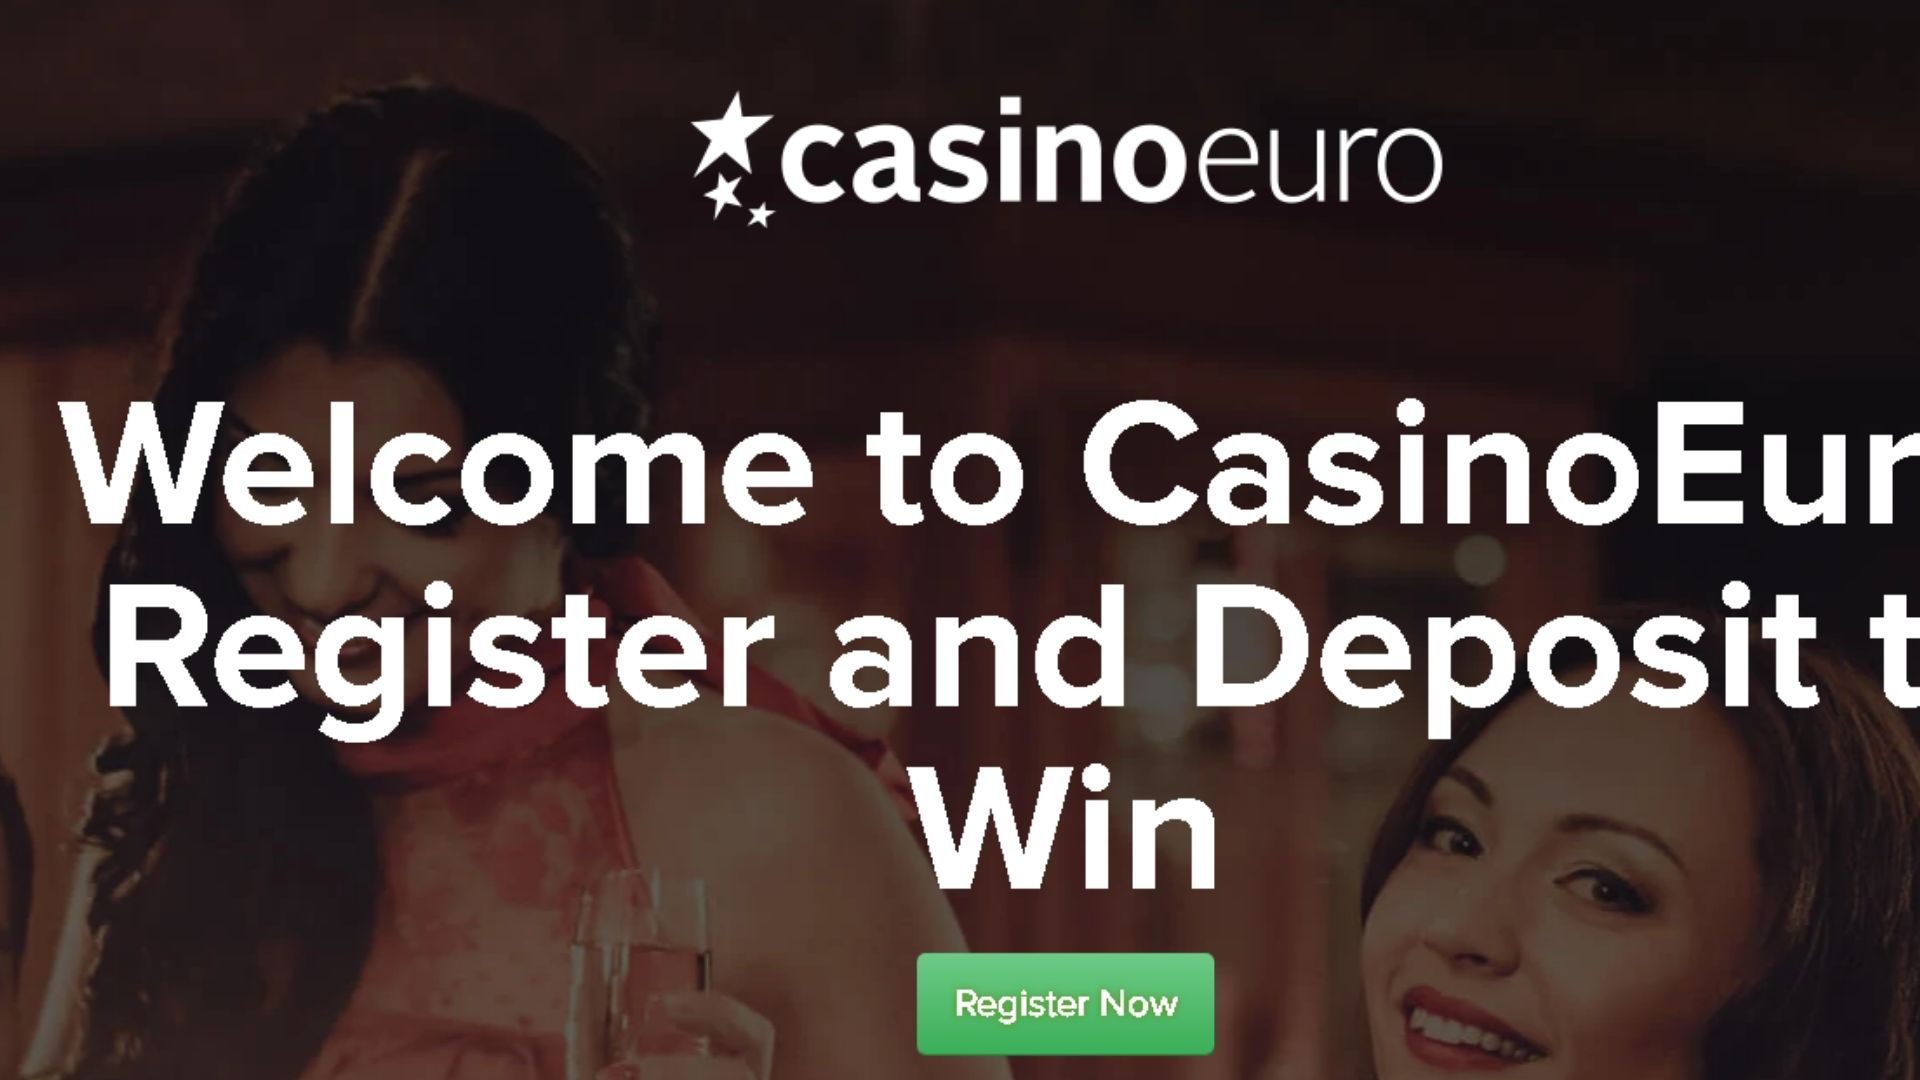 Casino Customer Service casinoeuro